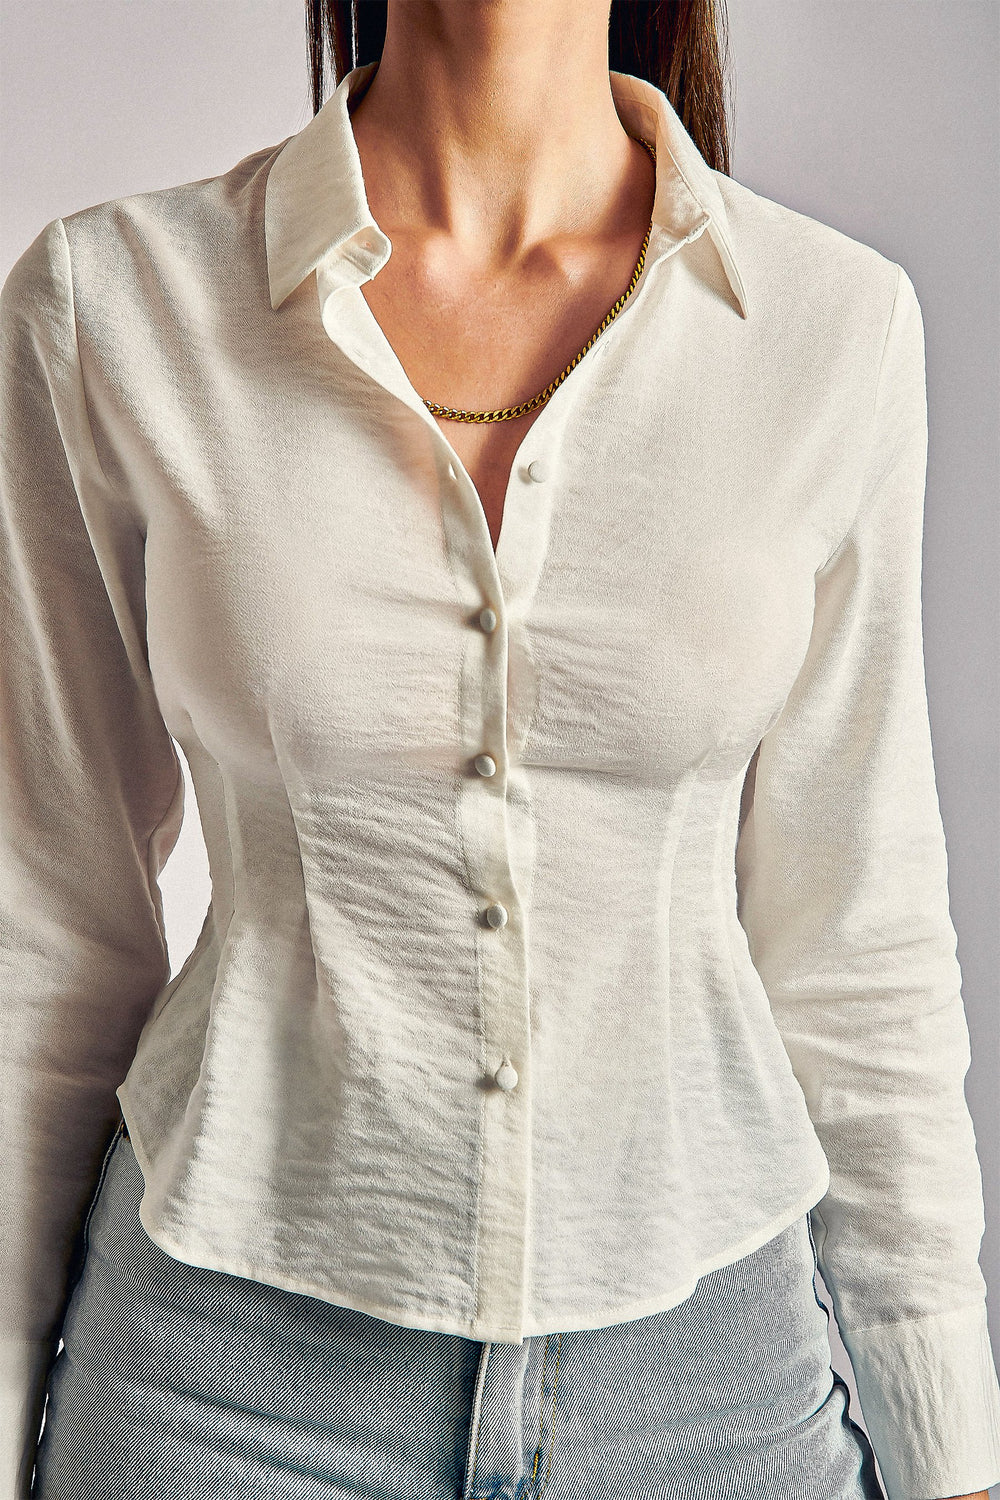 Anita Long Sleeve Tie Cuff Shirt - White